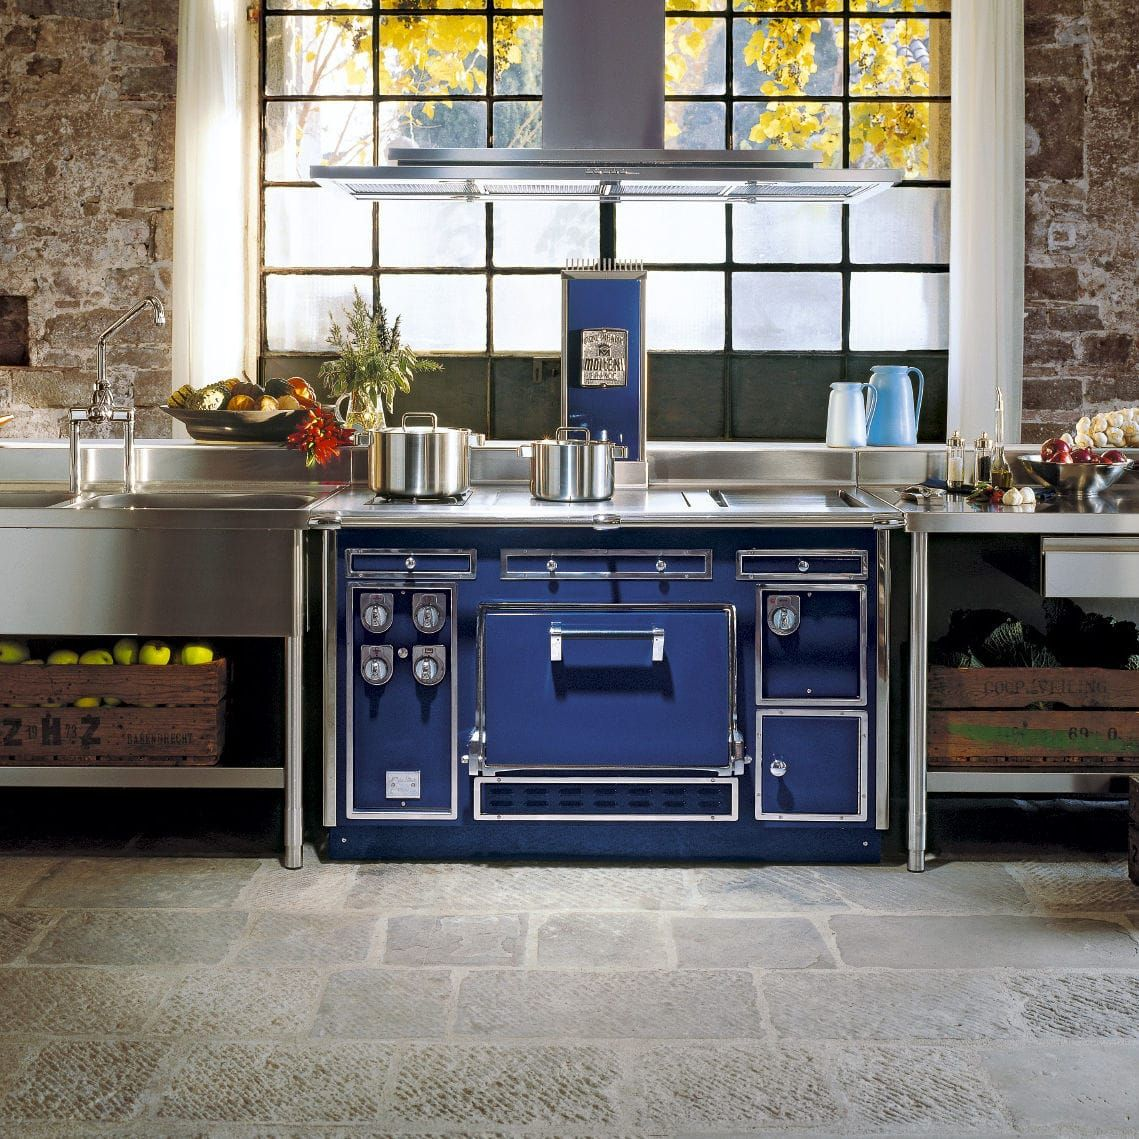 Pin by Edwin Michell on Kitchens Modern kitchen stoves